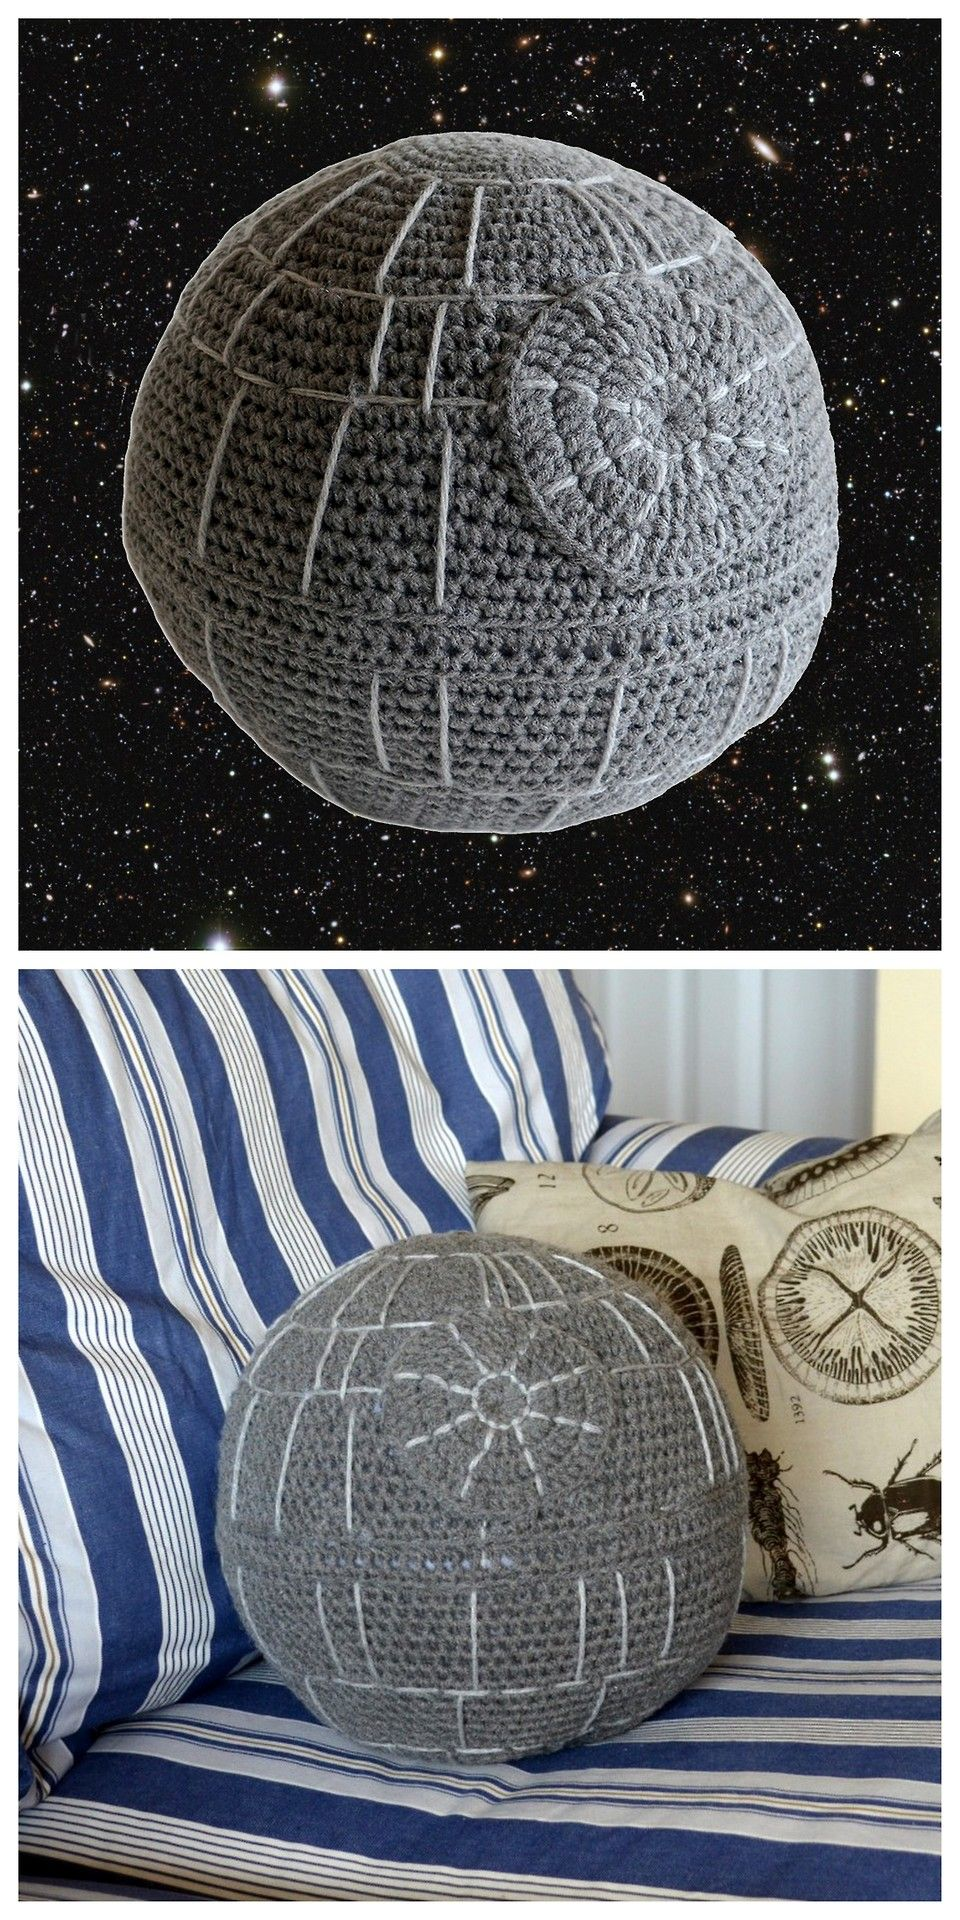 truebluemeandyou: DIY Crochet Death Star Pillow Free Pattern from Pops de Milk. In my experience lots of online free patterns either disappear or sometimes become patterns for sale - so if you like this download it soon. For a crochet sphere calculator go here. For more Star Wars Death Star DIYs go here: truebluemeandyou.tumblr.com/tagged/death-star For the mini Death Star roundup below go here.